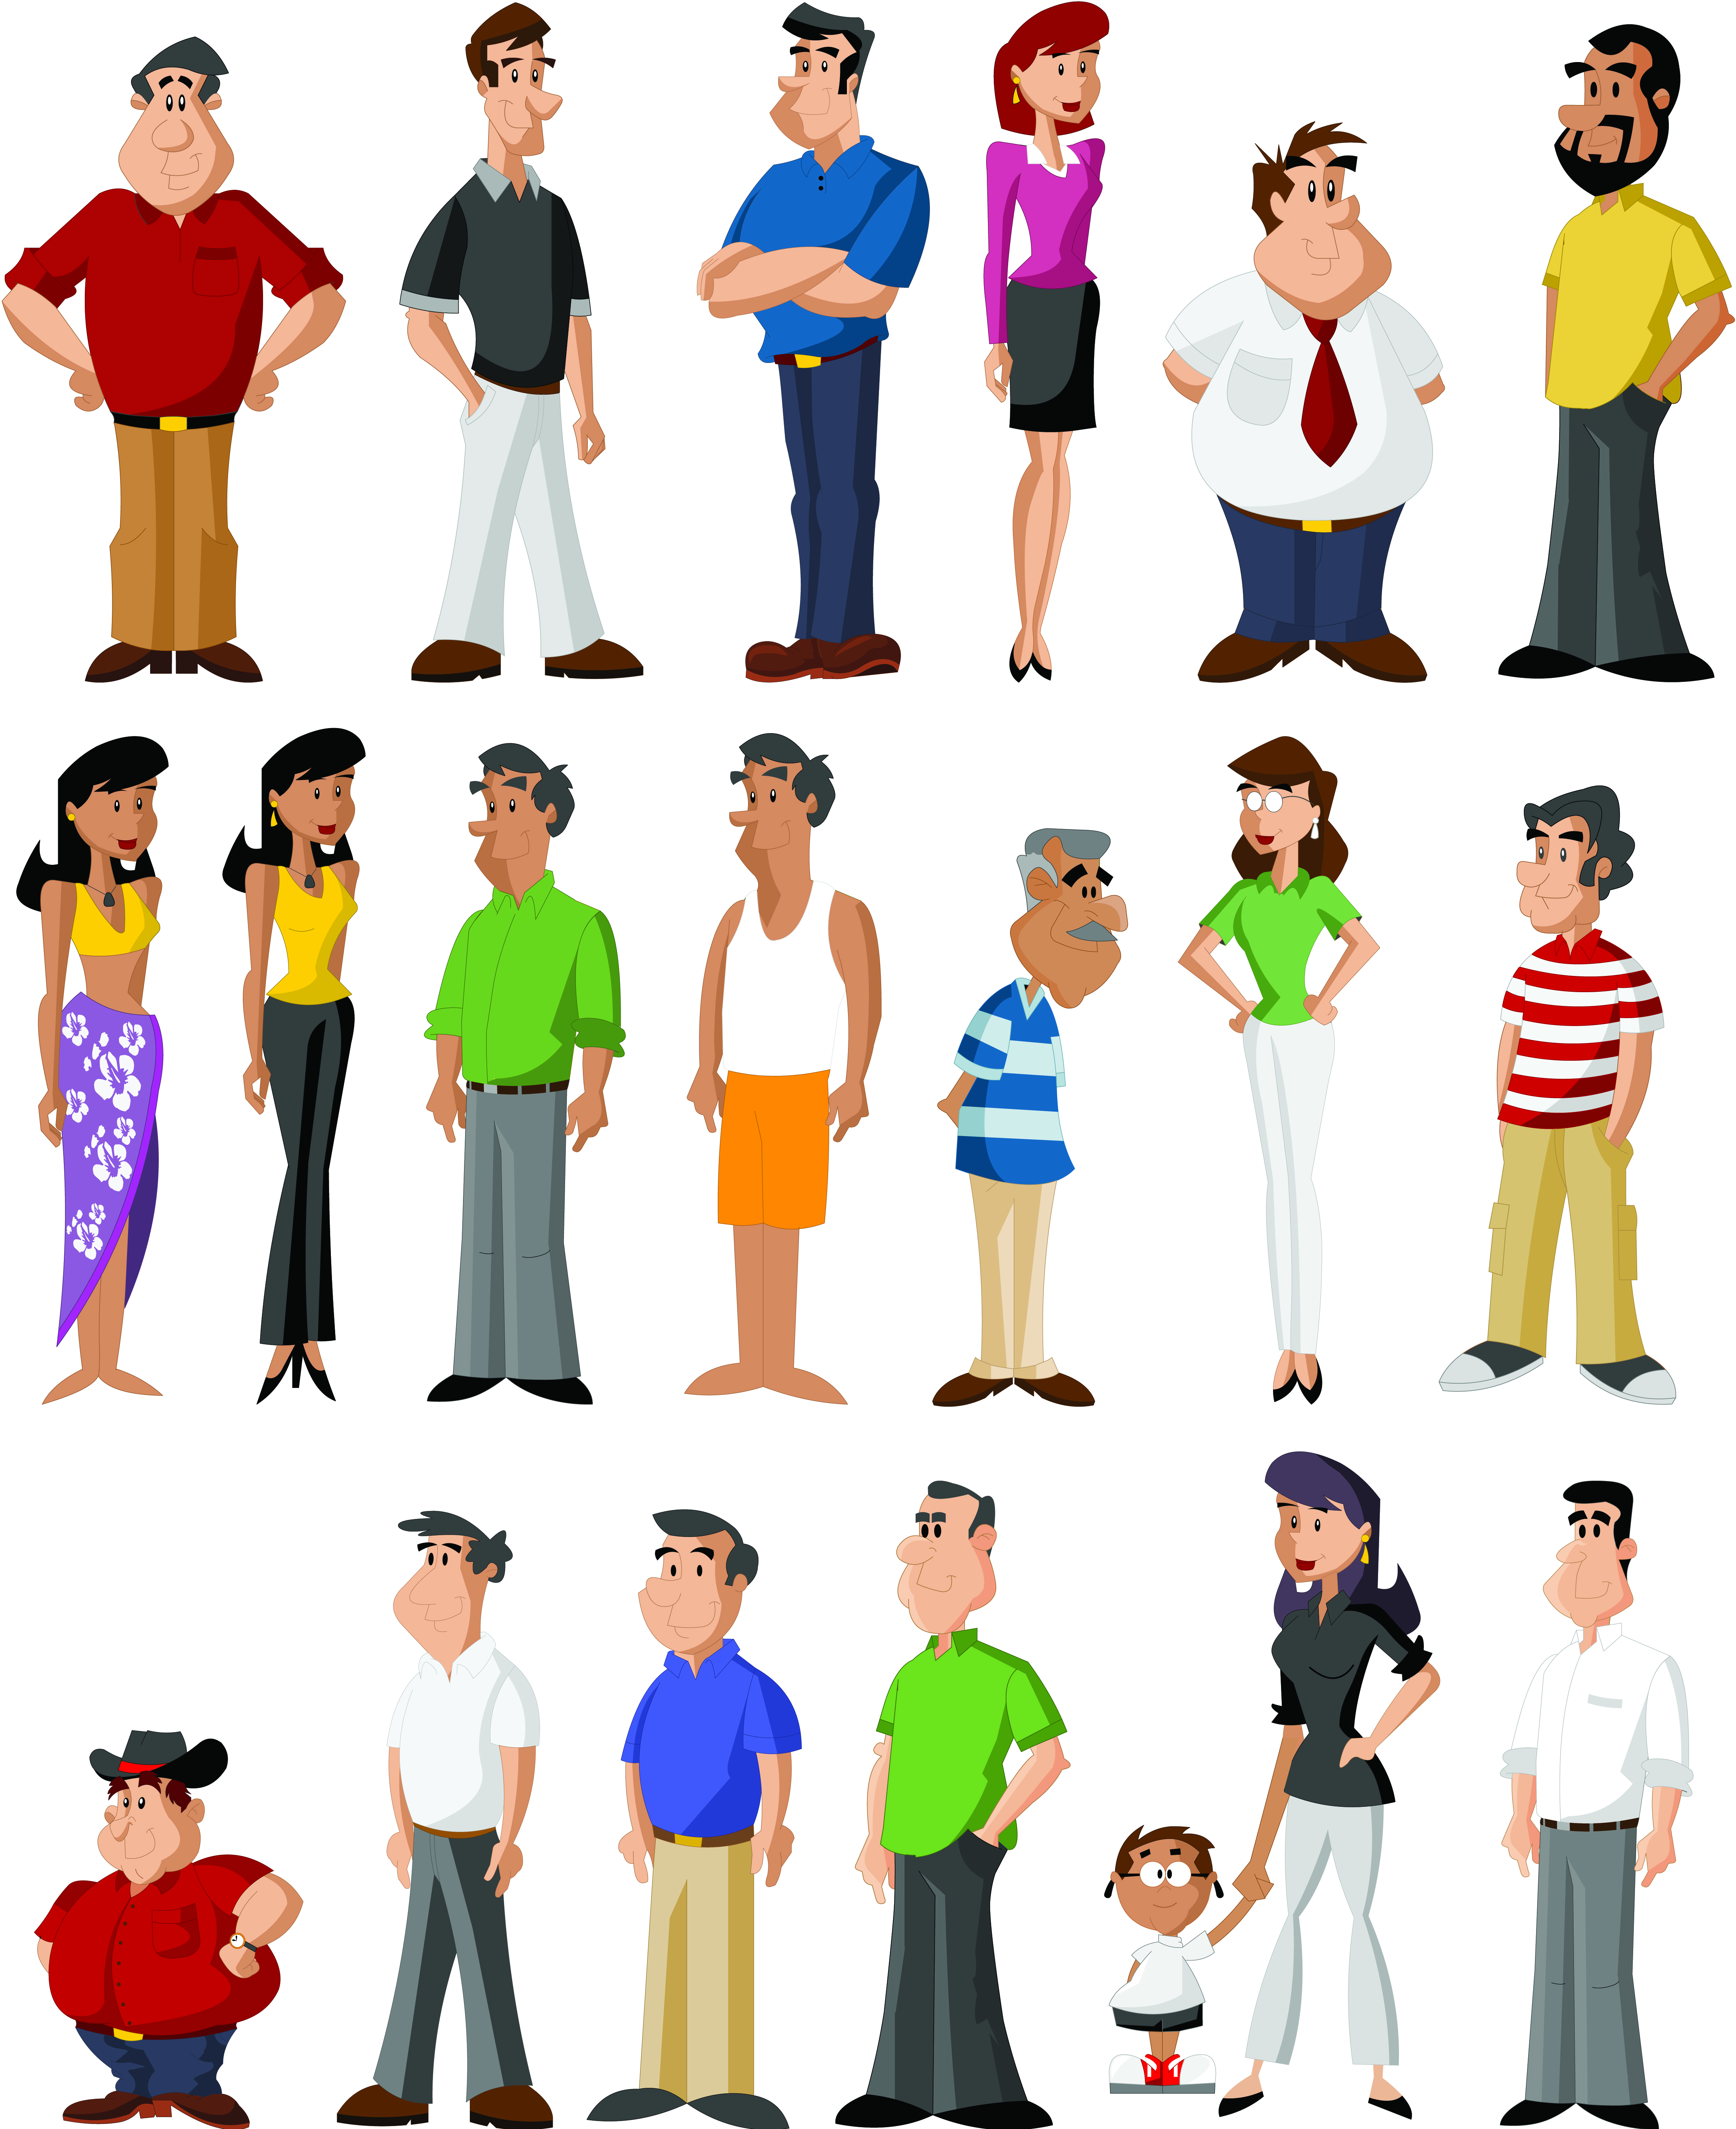 Free Photos Of Cartoon People, Download Free Clip Art, Free Clip Art.